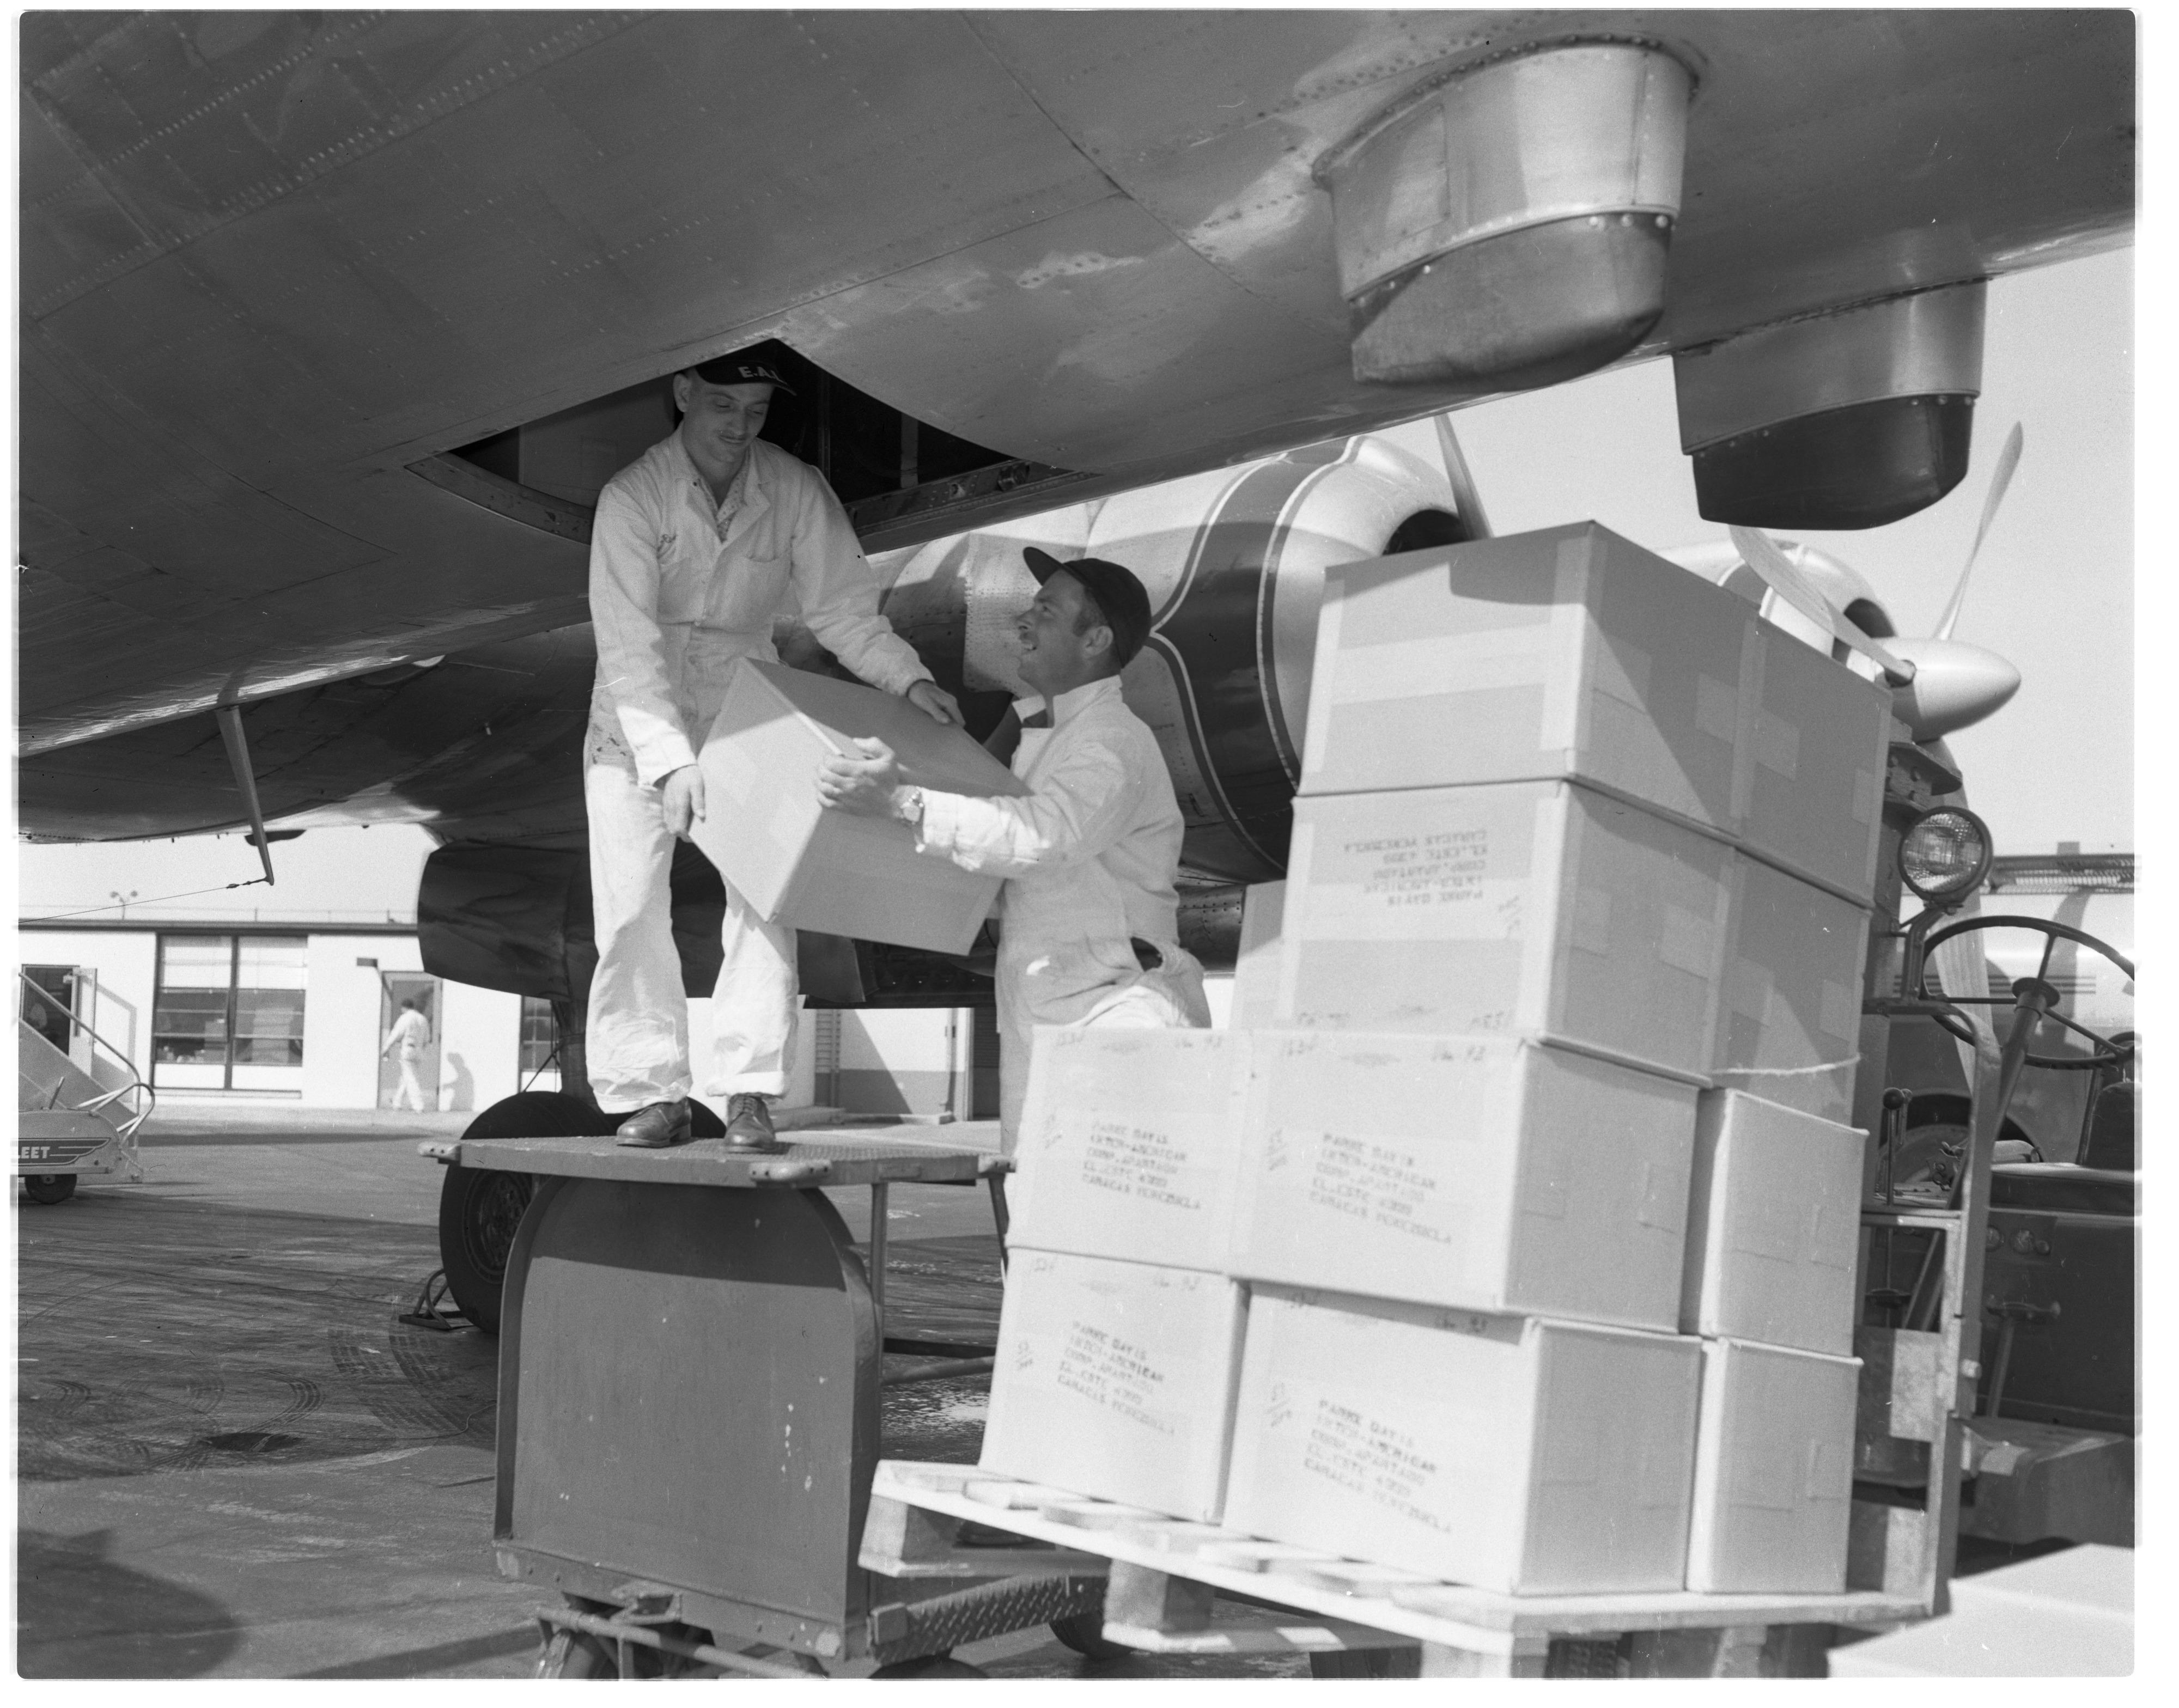 Donald Bennett and Robert Breazeale send polio vaccination to Caracas, Venezuela, April 23, 1955 image